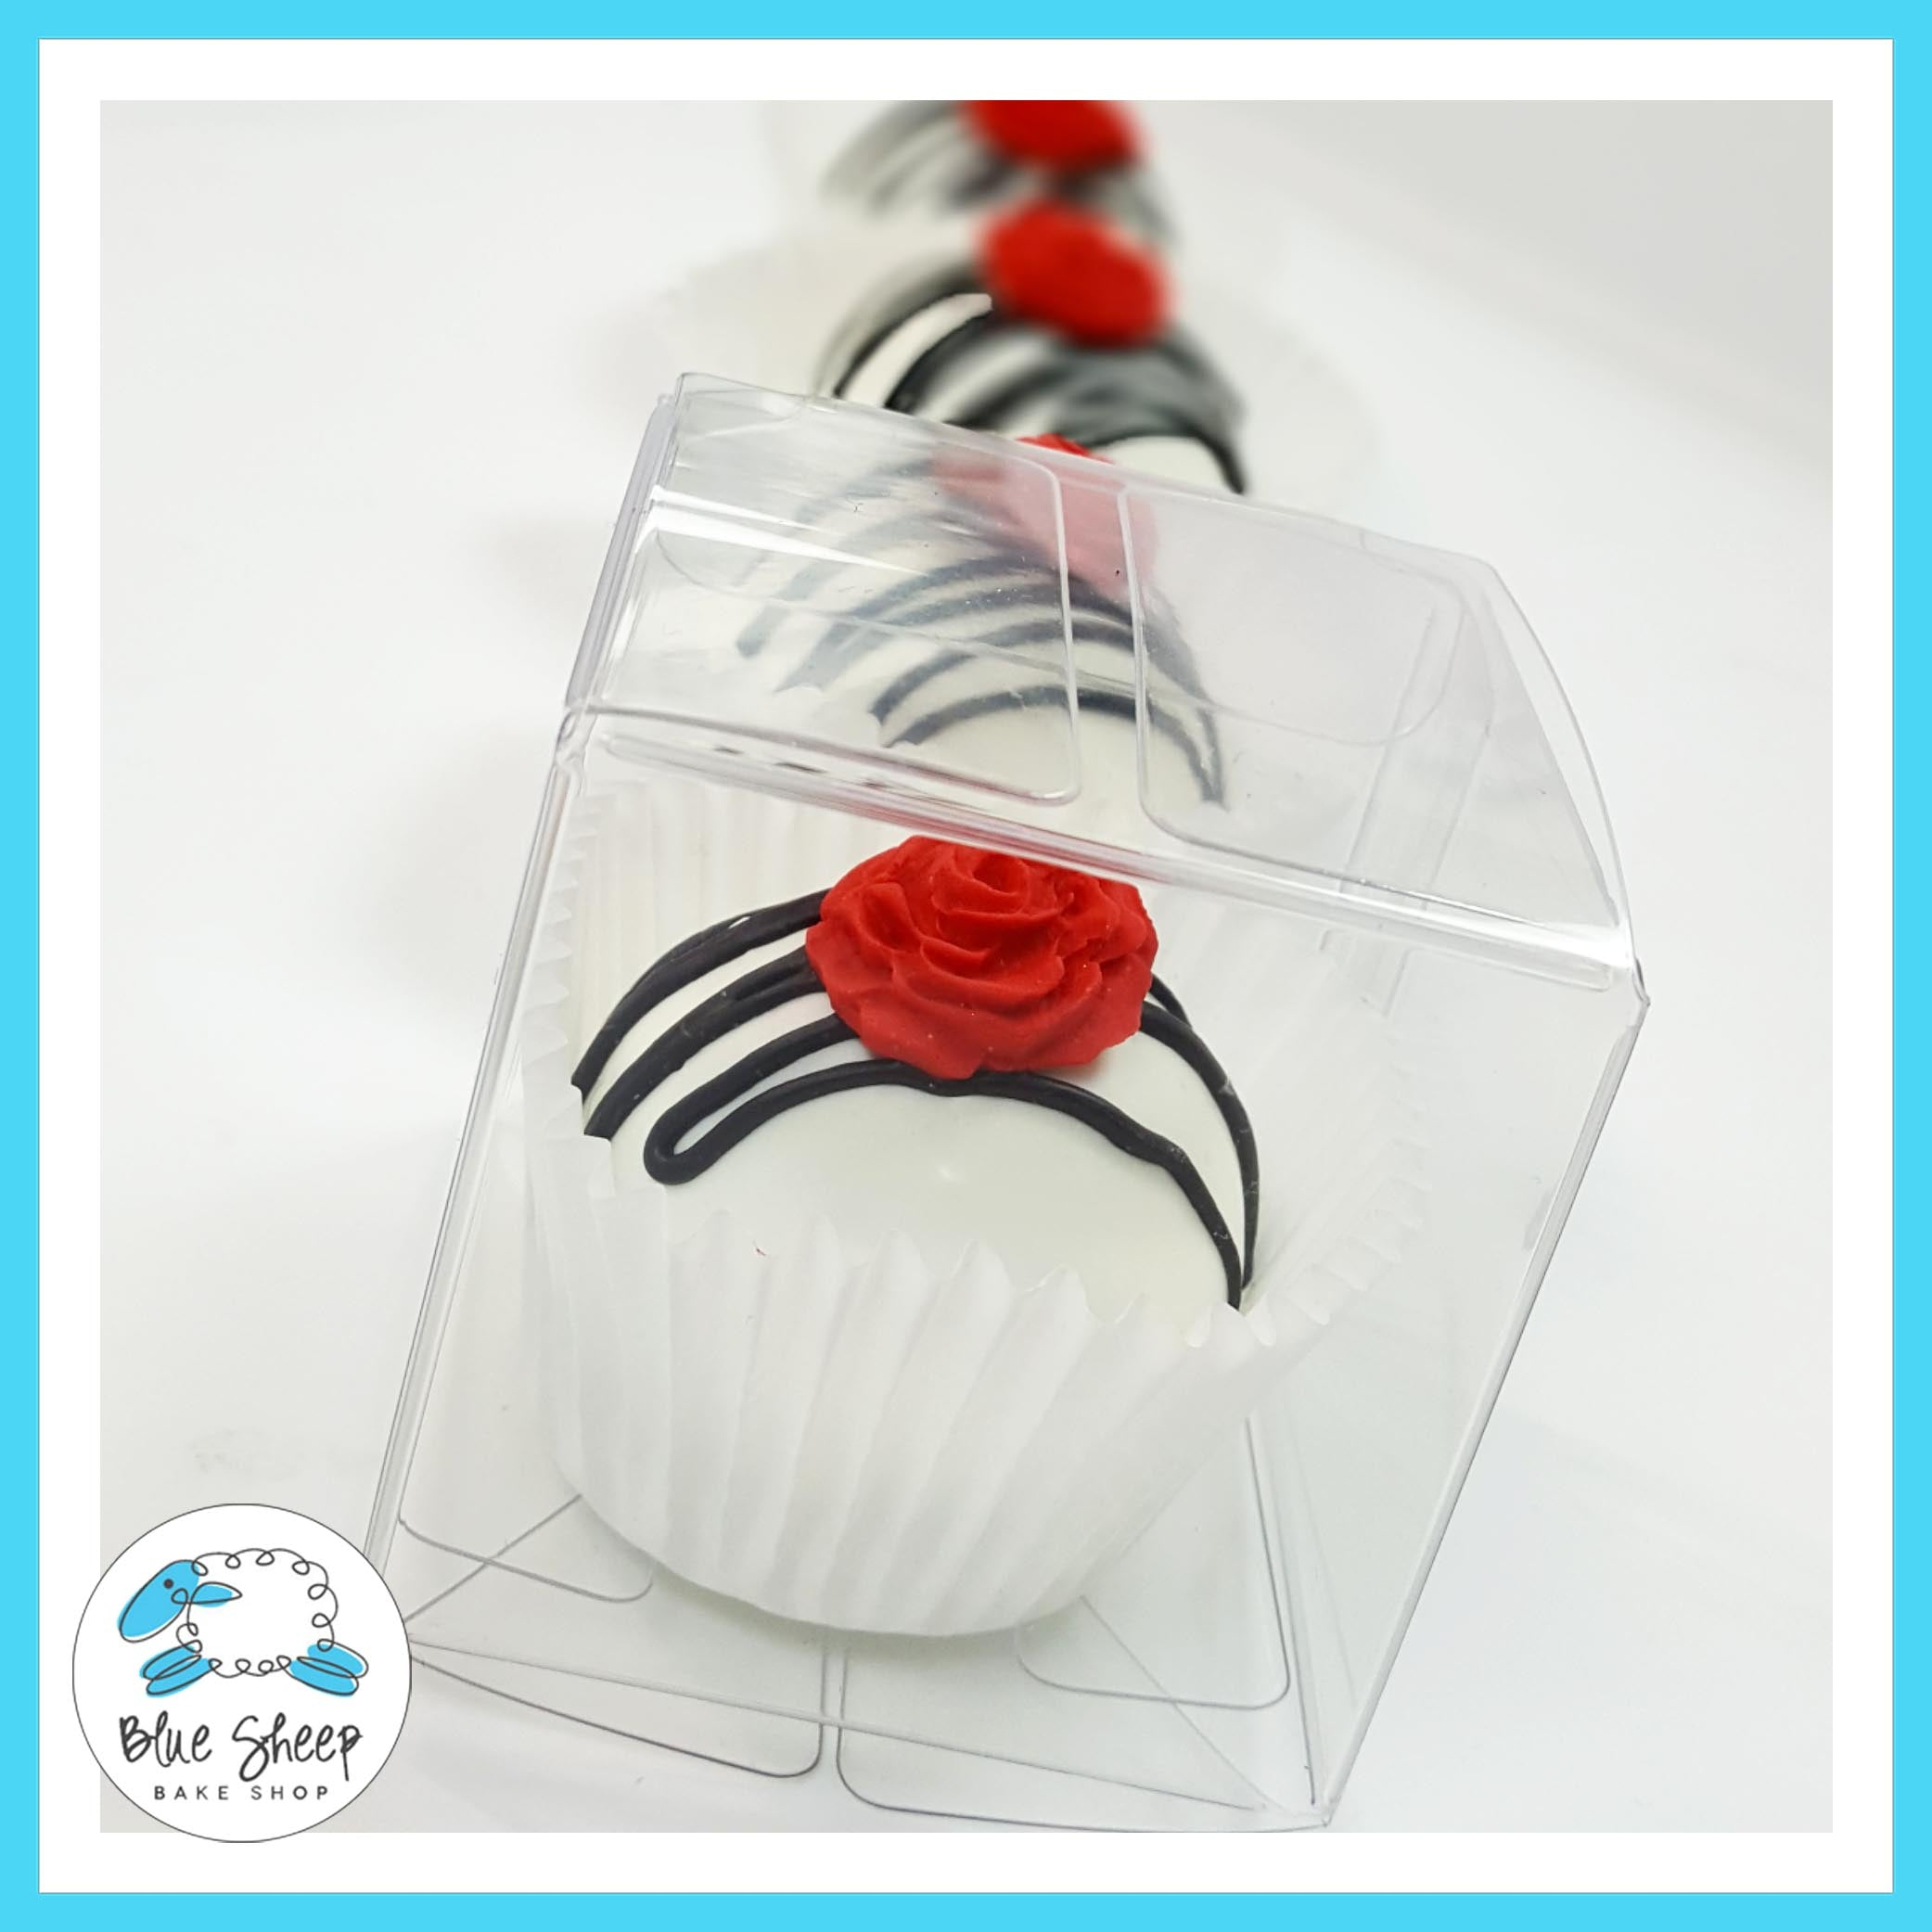 White & BLack Cake Truffle With a Red Rose NJ | Blue Sheep Bake Shop